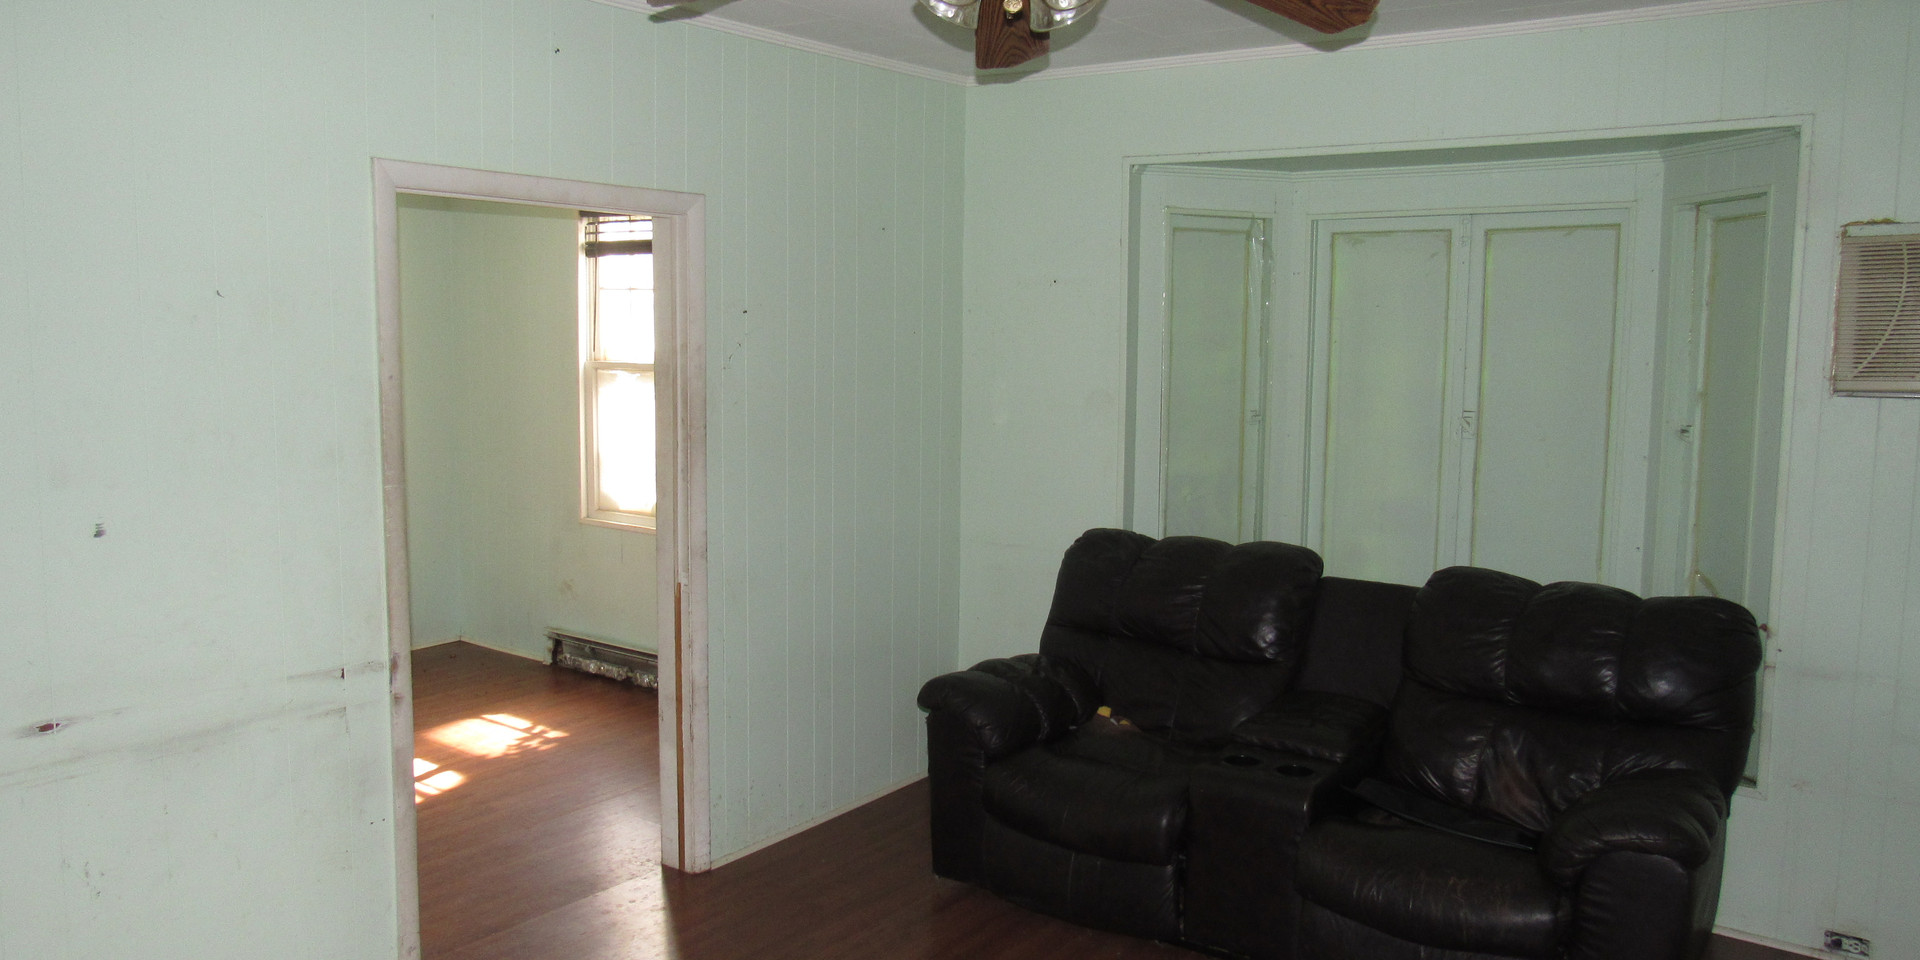 07 - Living Room Area C.JPG